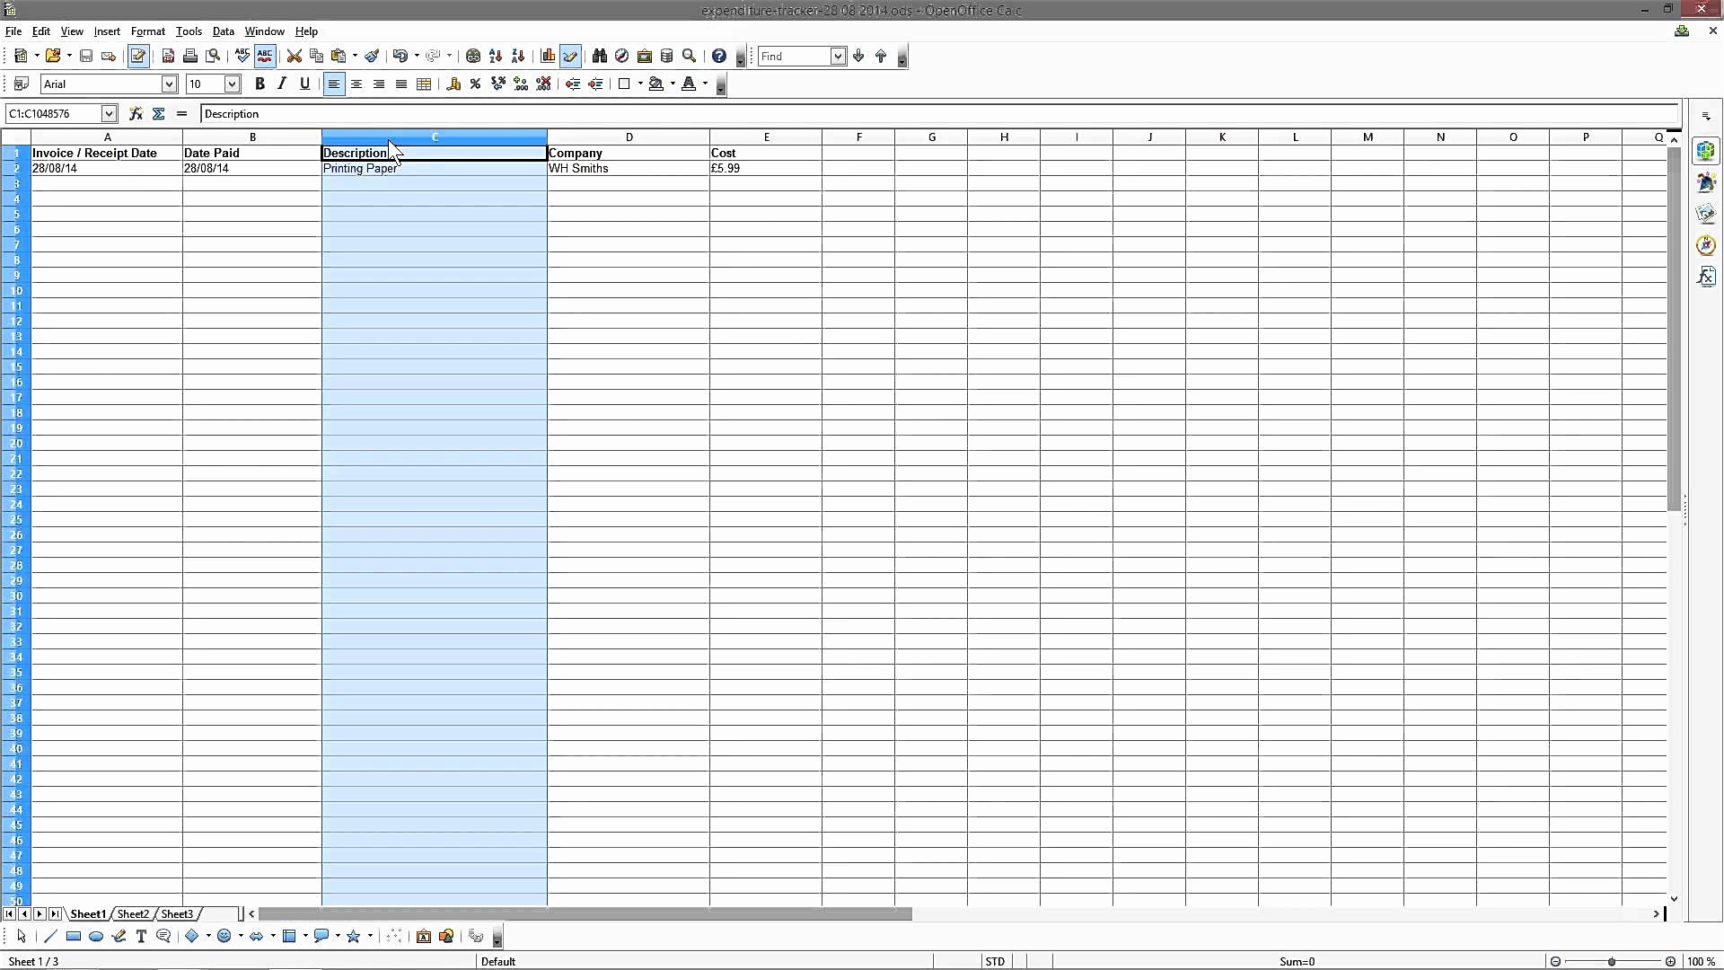 Excel Spreadsheet For Small Business Expenses Intended For Expense Tracker Spreadsheet Or Small Business Expense Sheet Excel